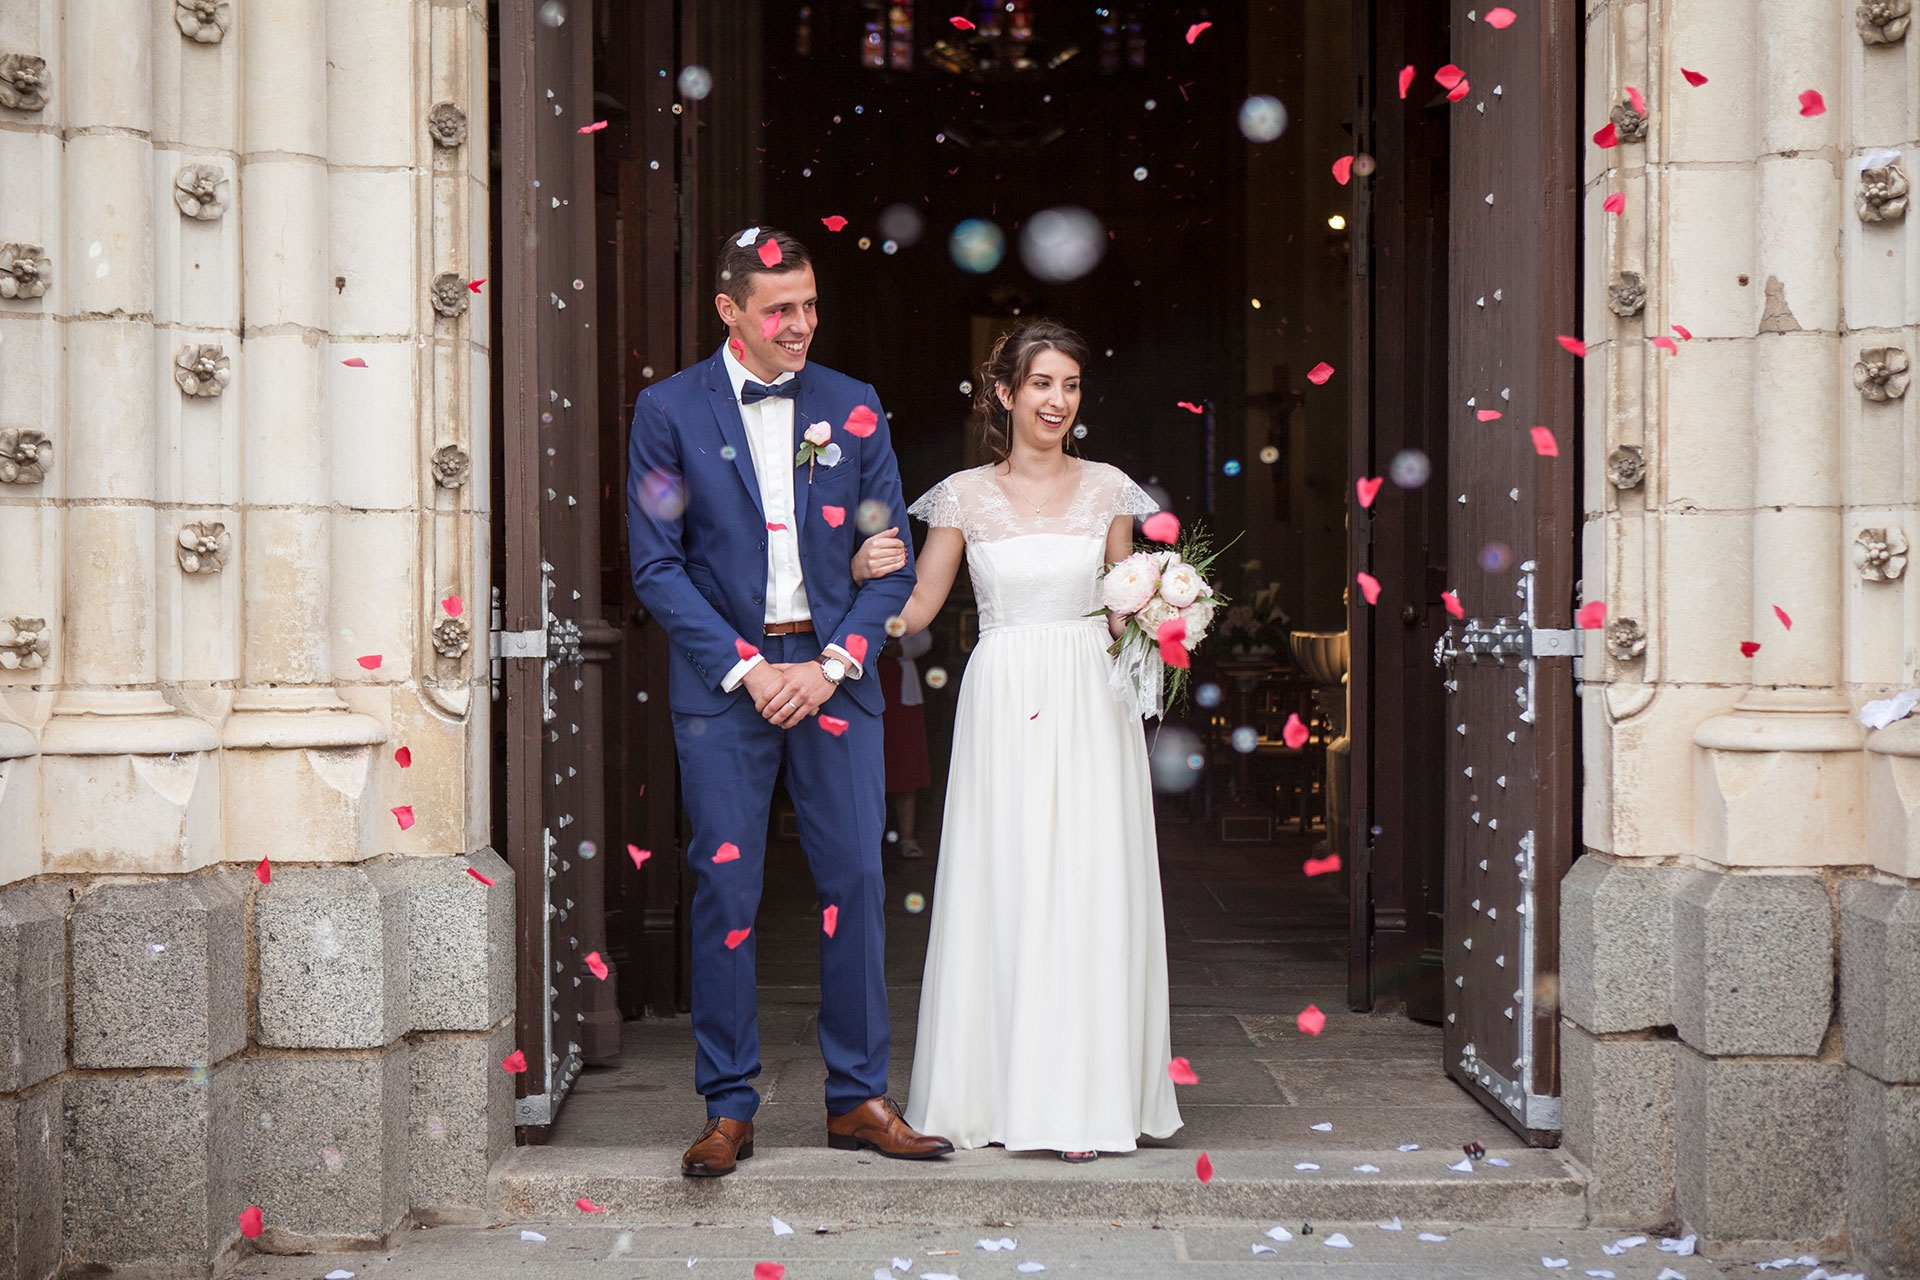 particuliers-evenements-mariages-oui-clementine&alexandre-40